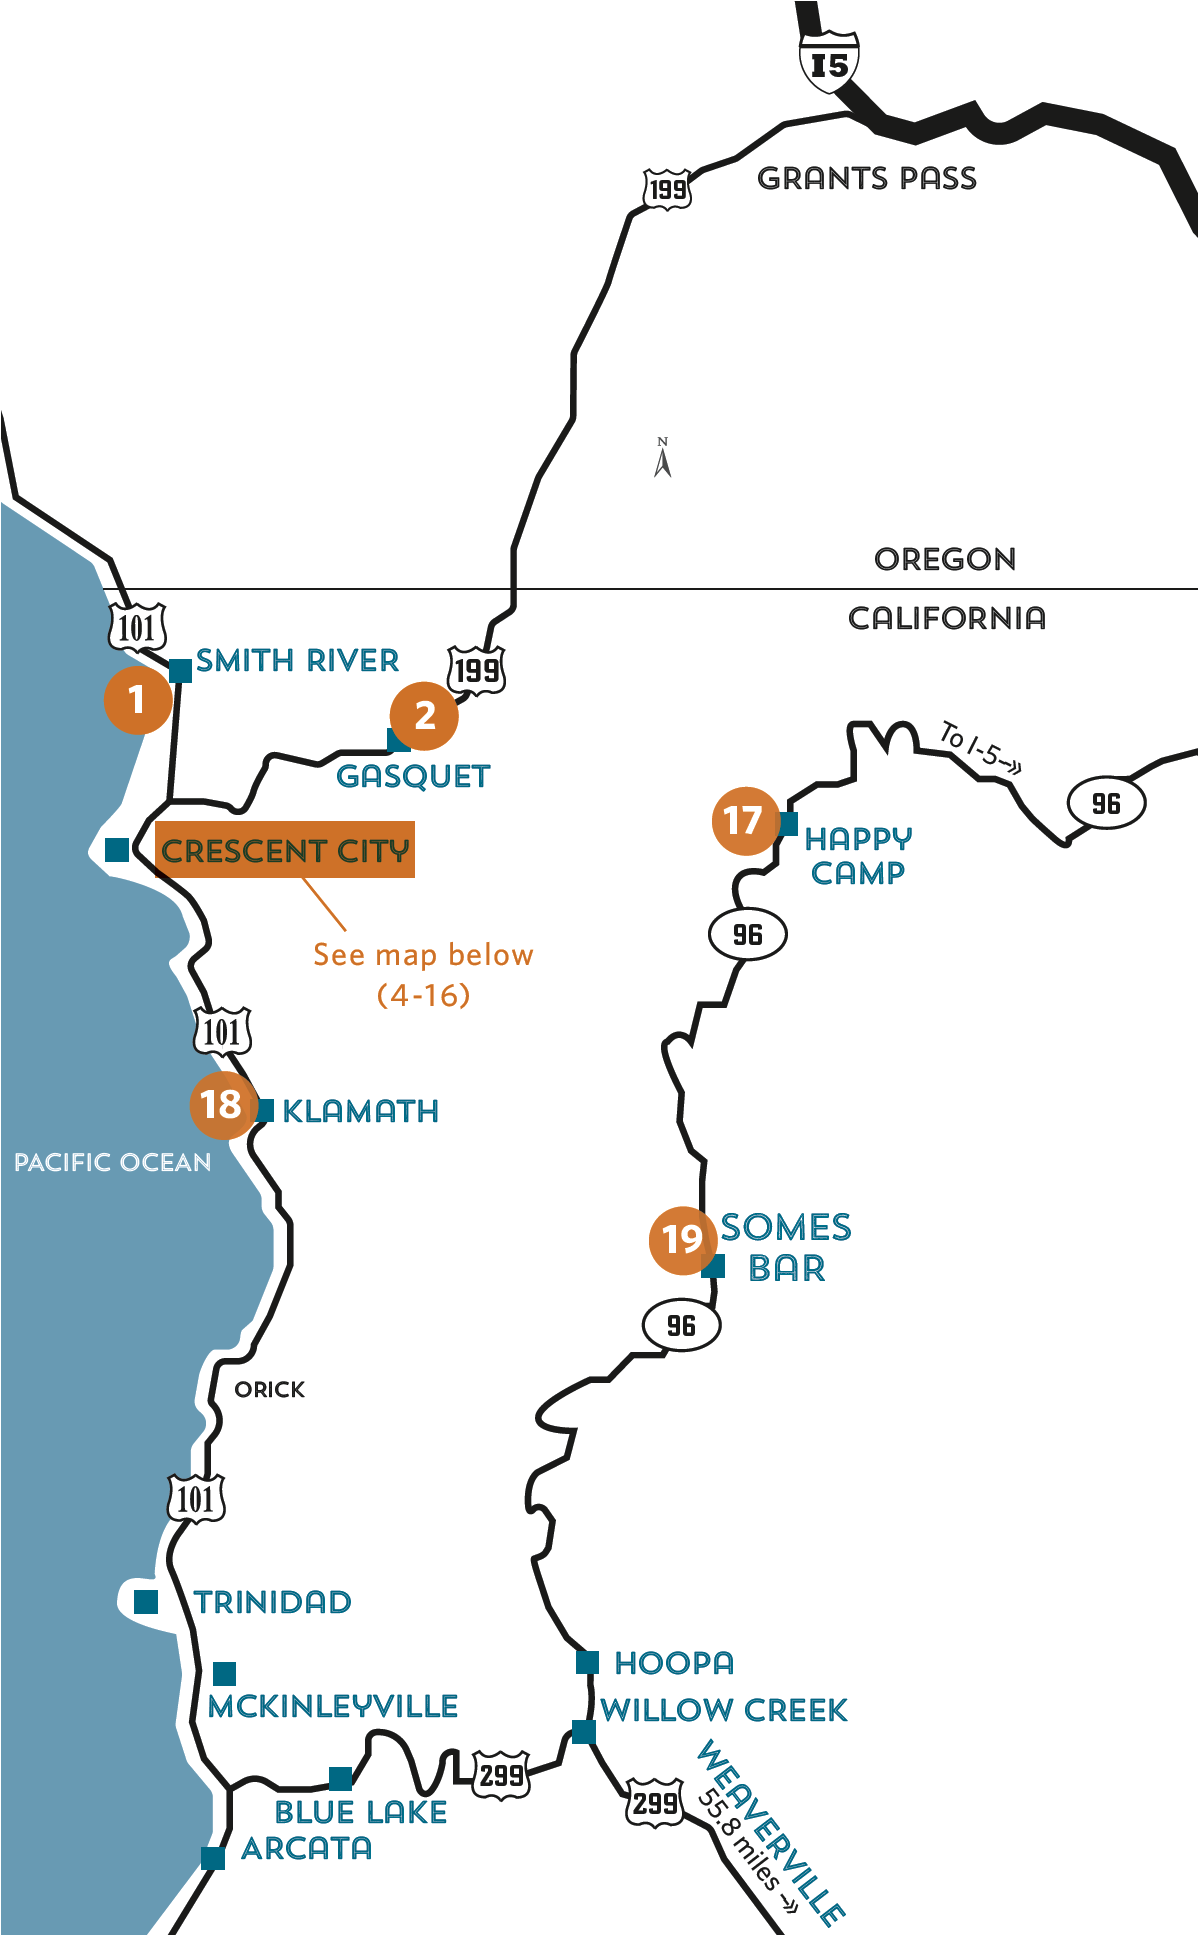 Overview map of locations - northern humboldt